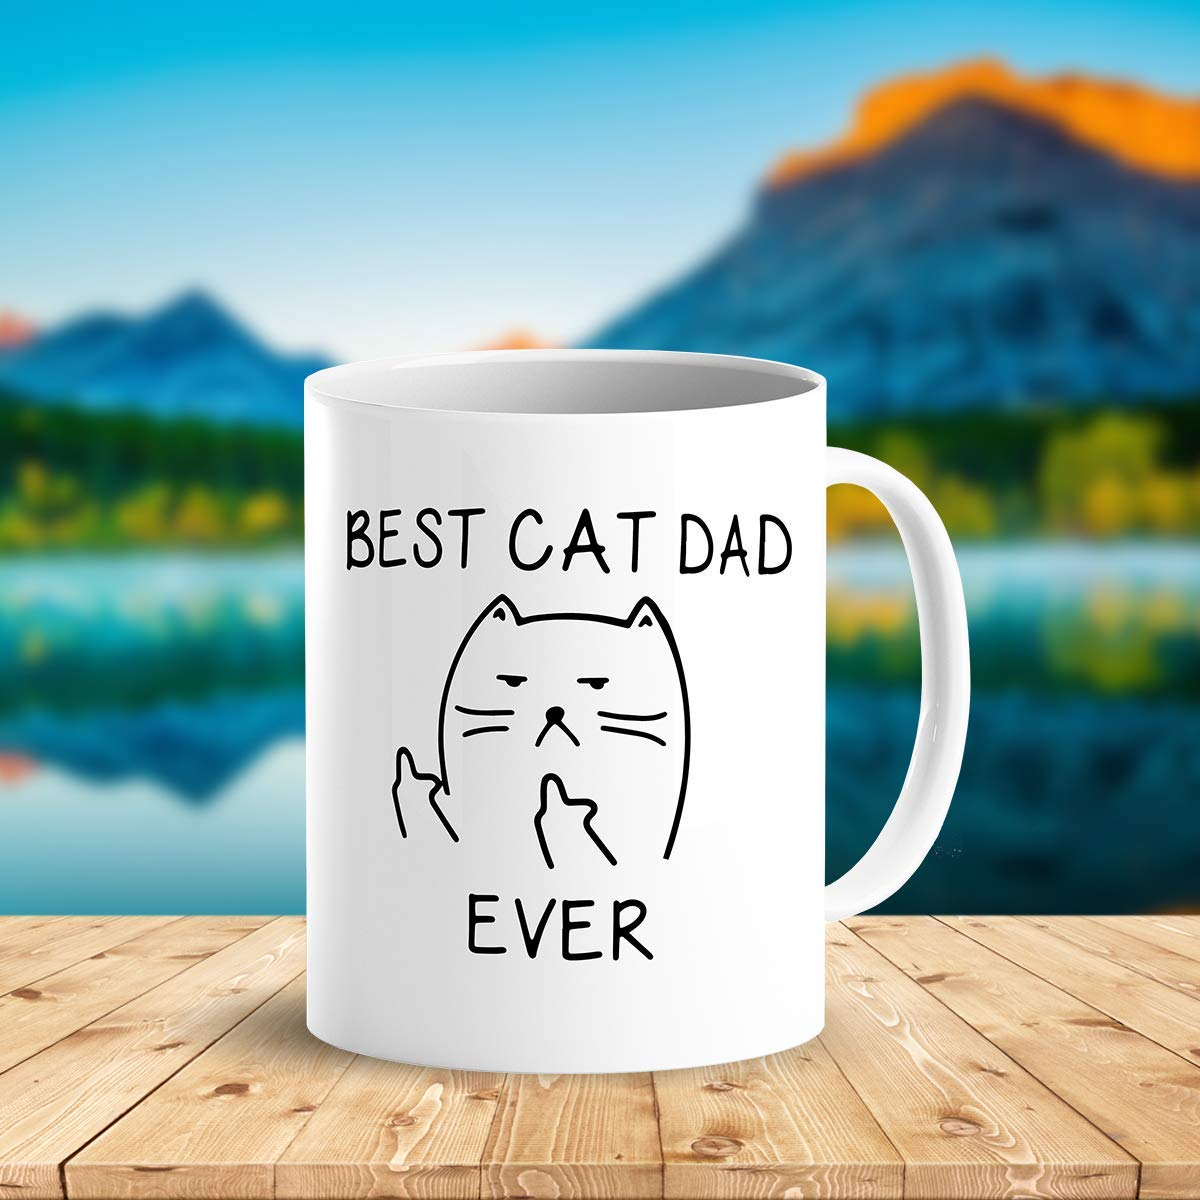 Best Cat Dad EverFunny Cat Lover Gifts Funny Middle Finger Coffee MugUnique Birthday Gift For Dad B079FZ3DHS 3